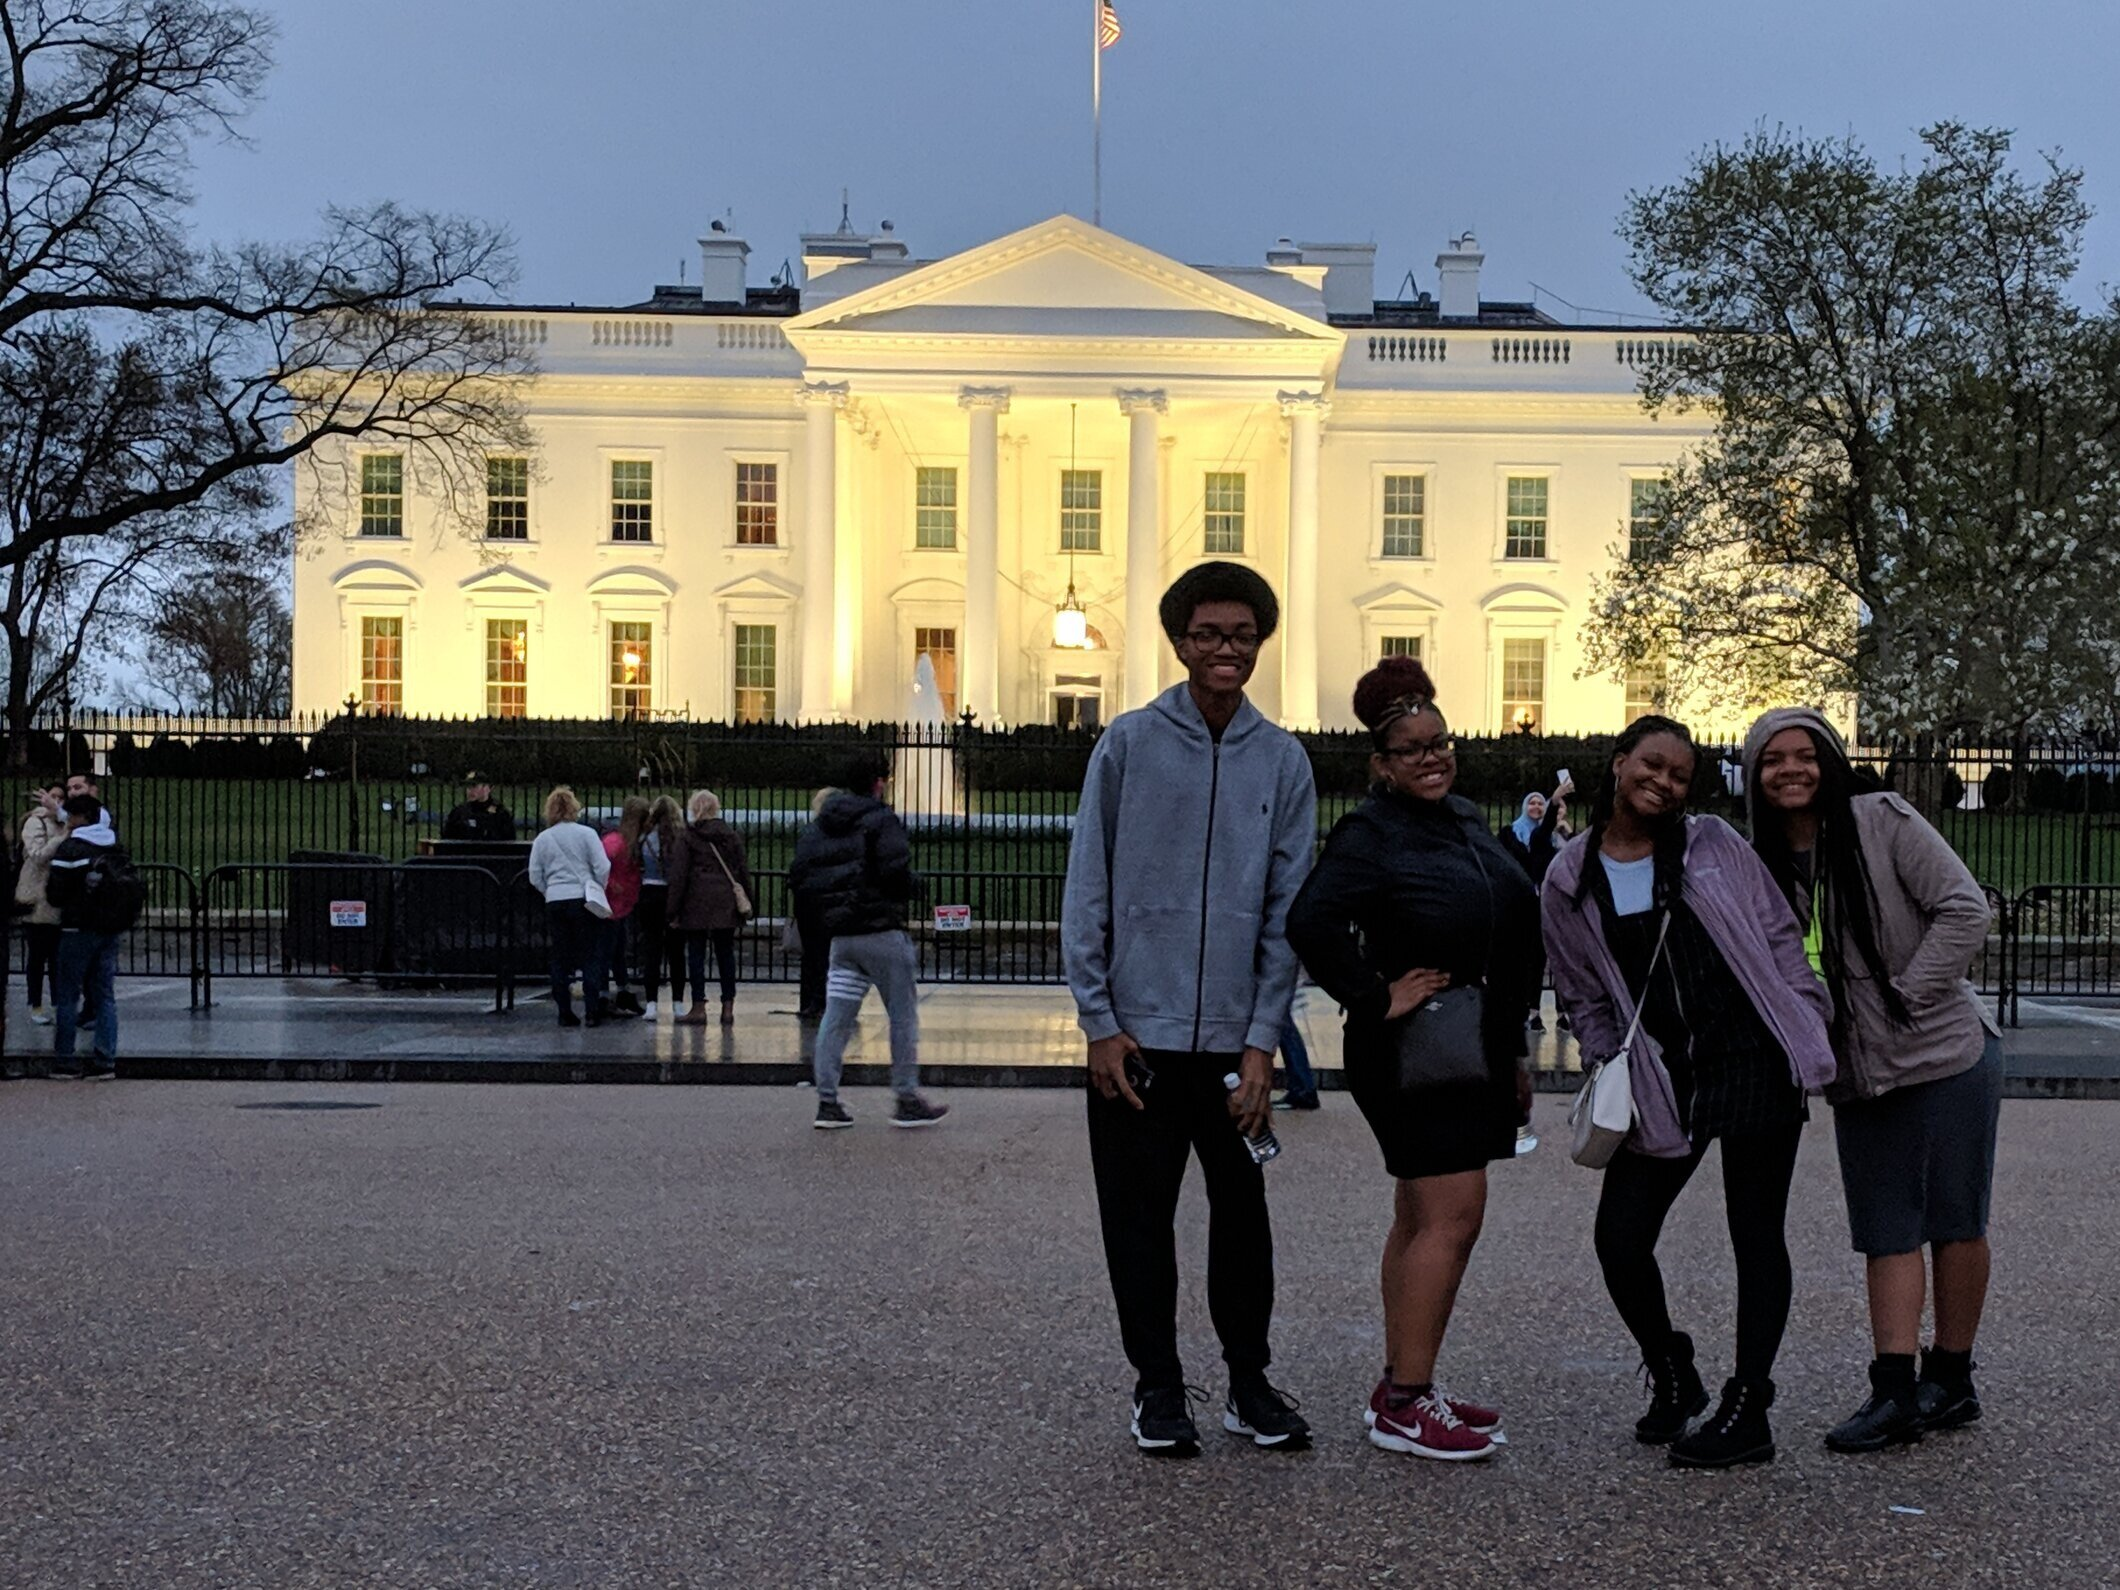 Up to 4 students will travel to DC to tour the National Museum of African American History & Culture, meet inspiring role models and visit other sites.